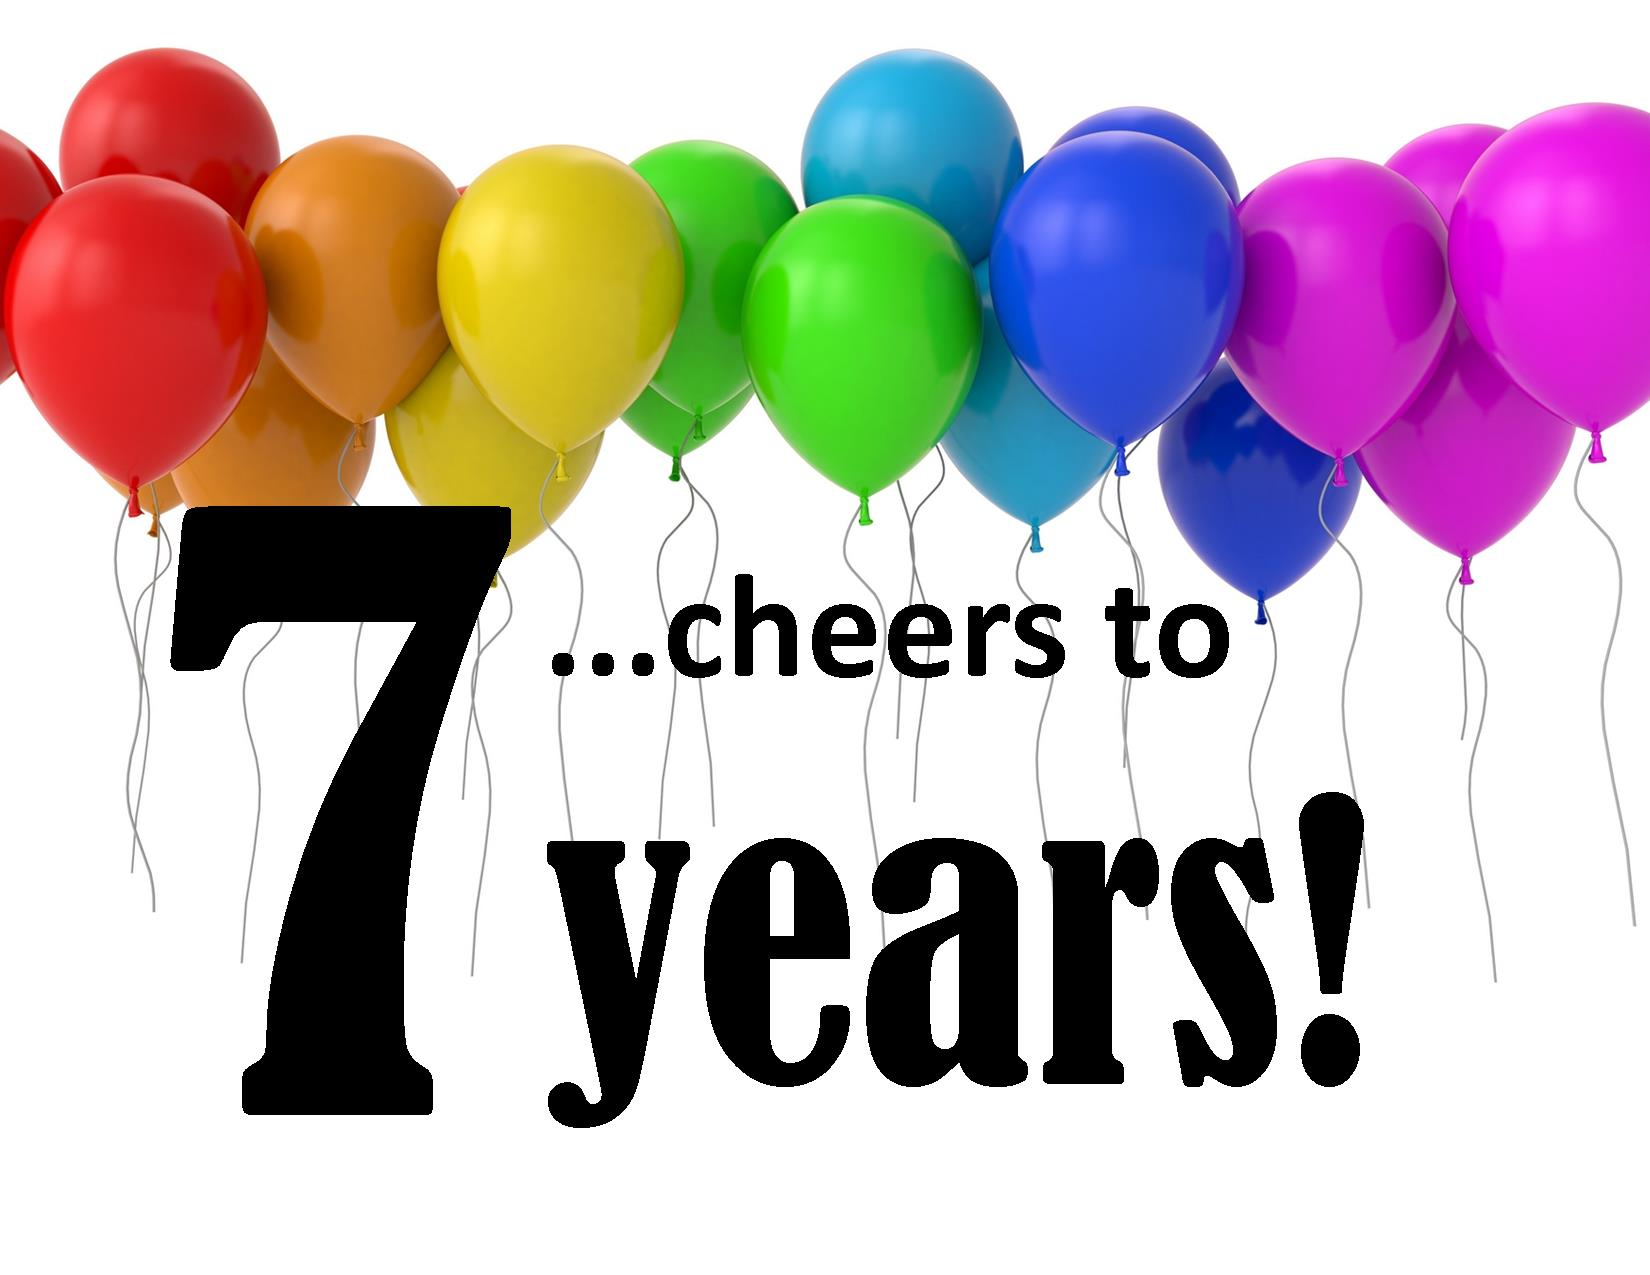 7 years clipart picture stock 7 Year Anniversary Clipart | Clipart Panda - Free Clipart Images picture stock